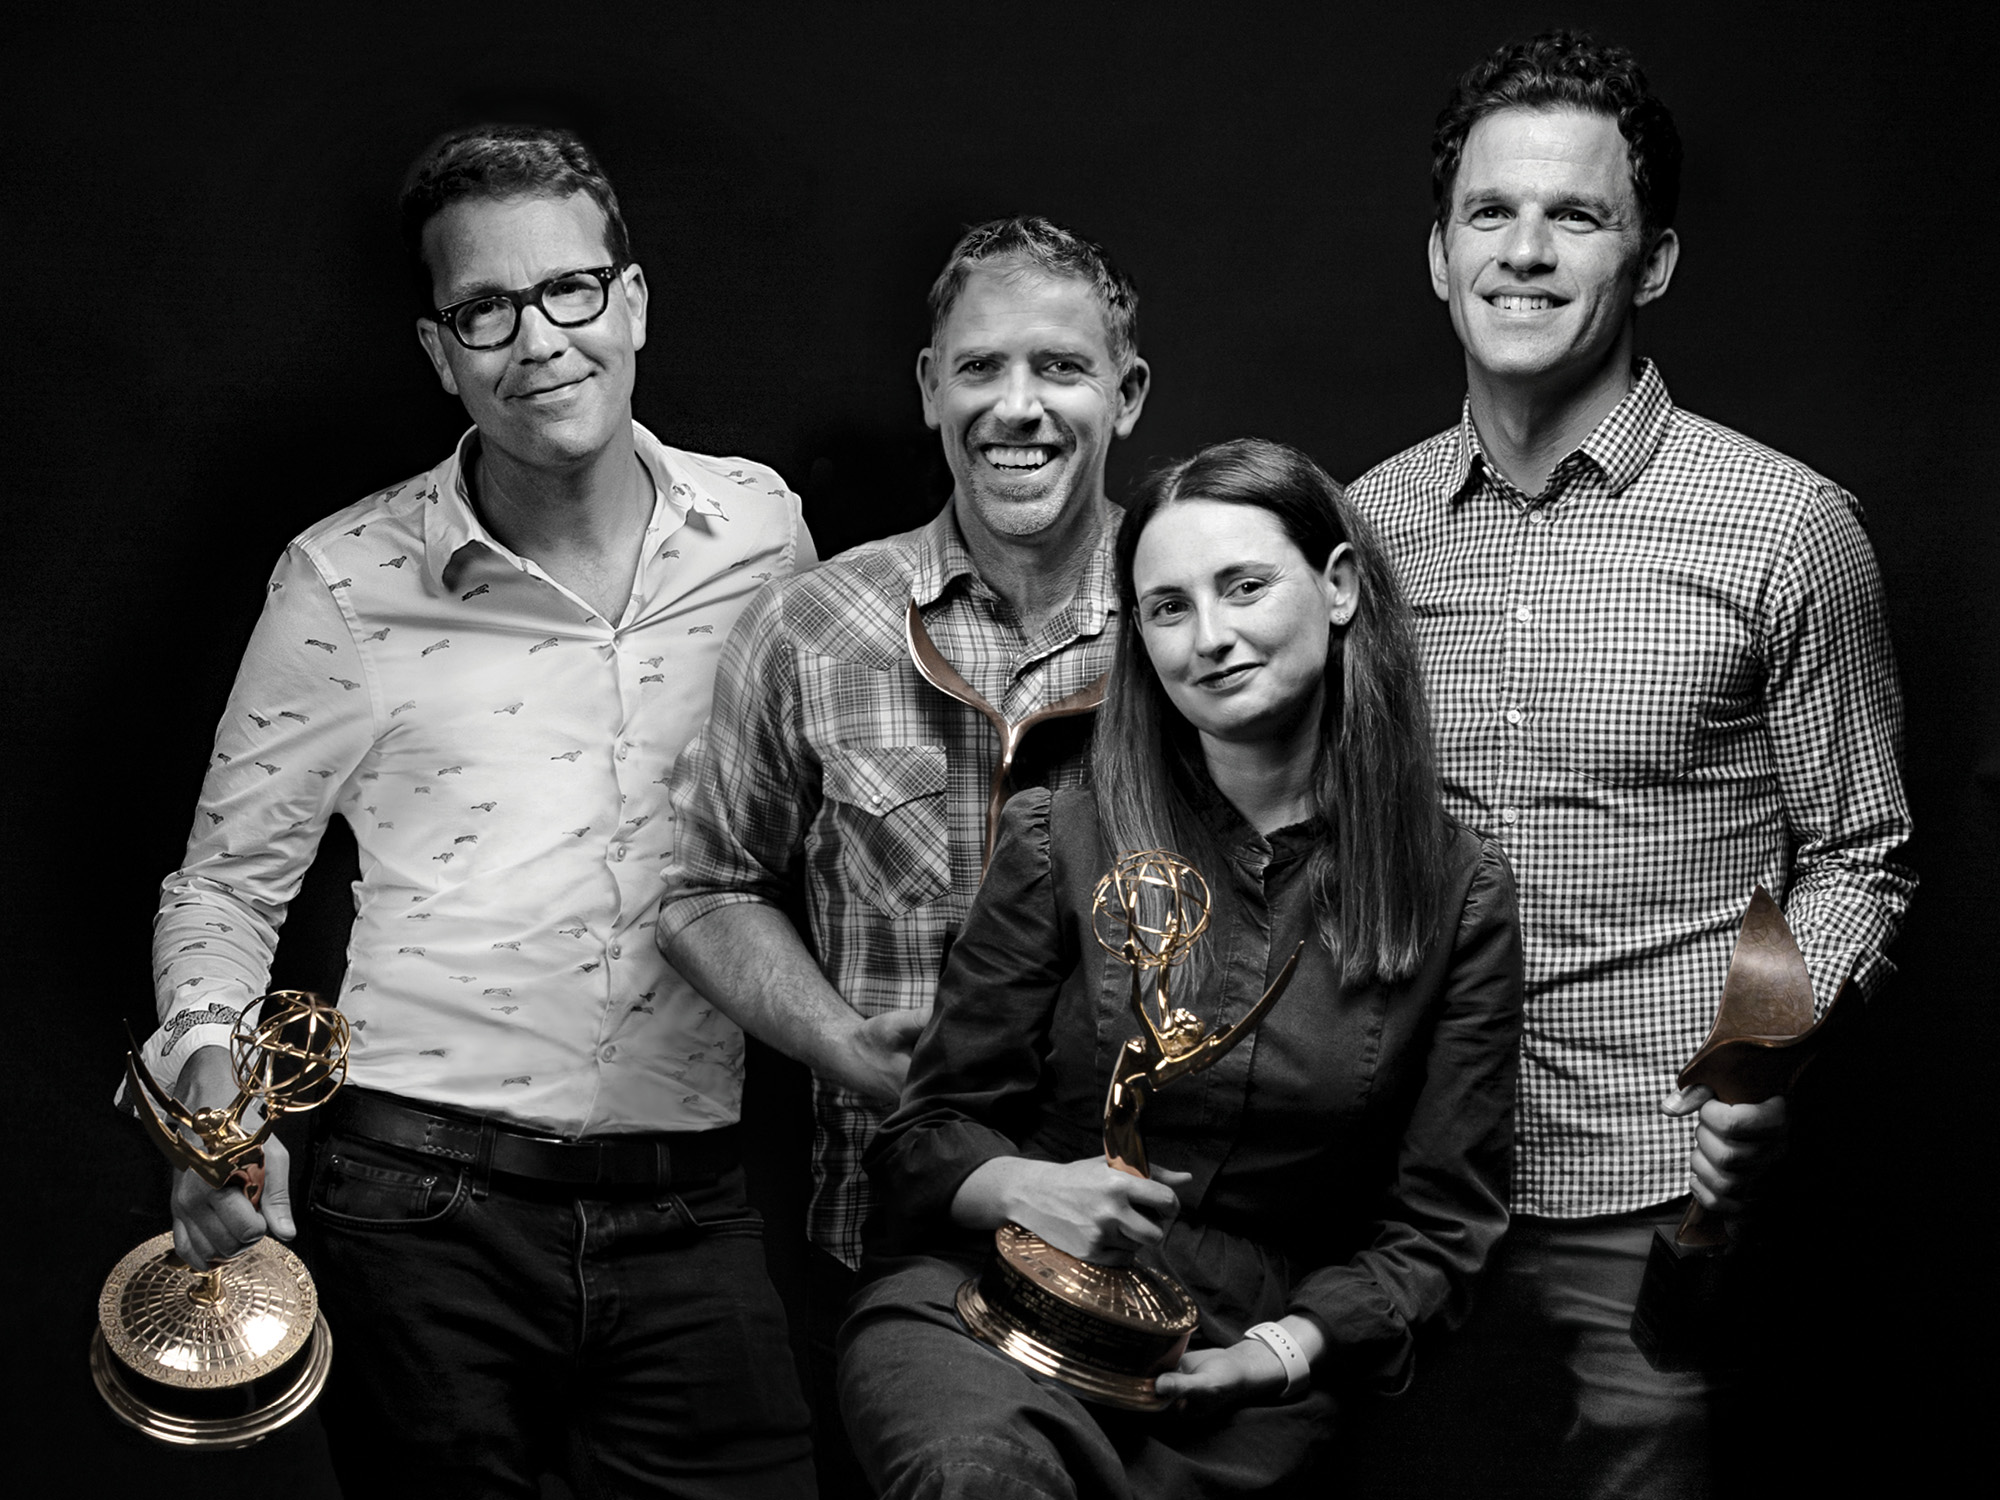 the four writers of Castle Rock pose together for a photo, two of them holding award statues